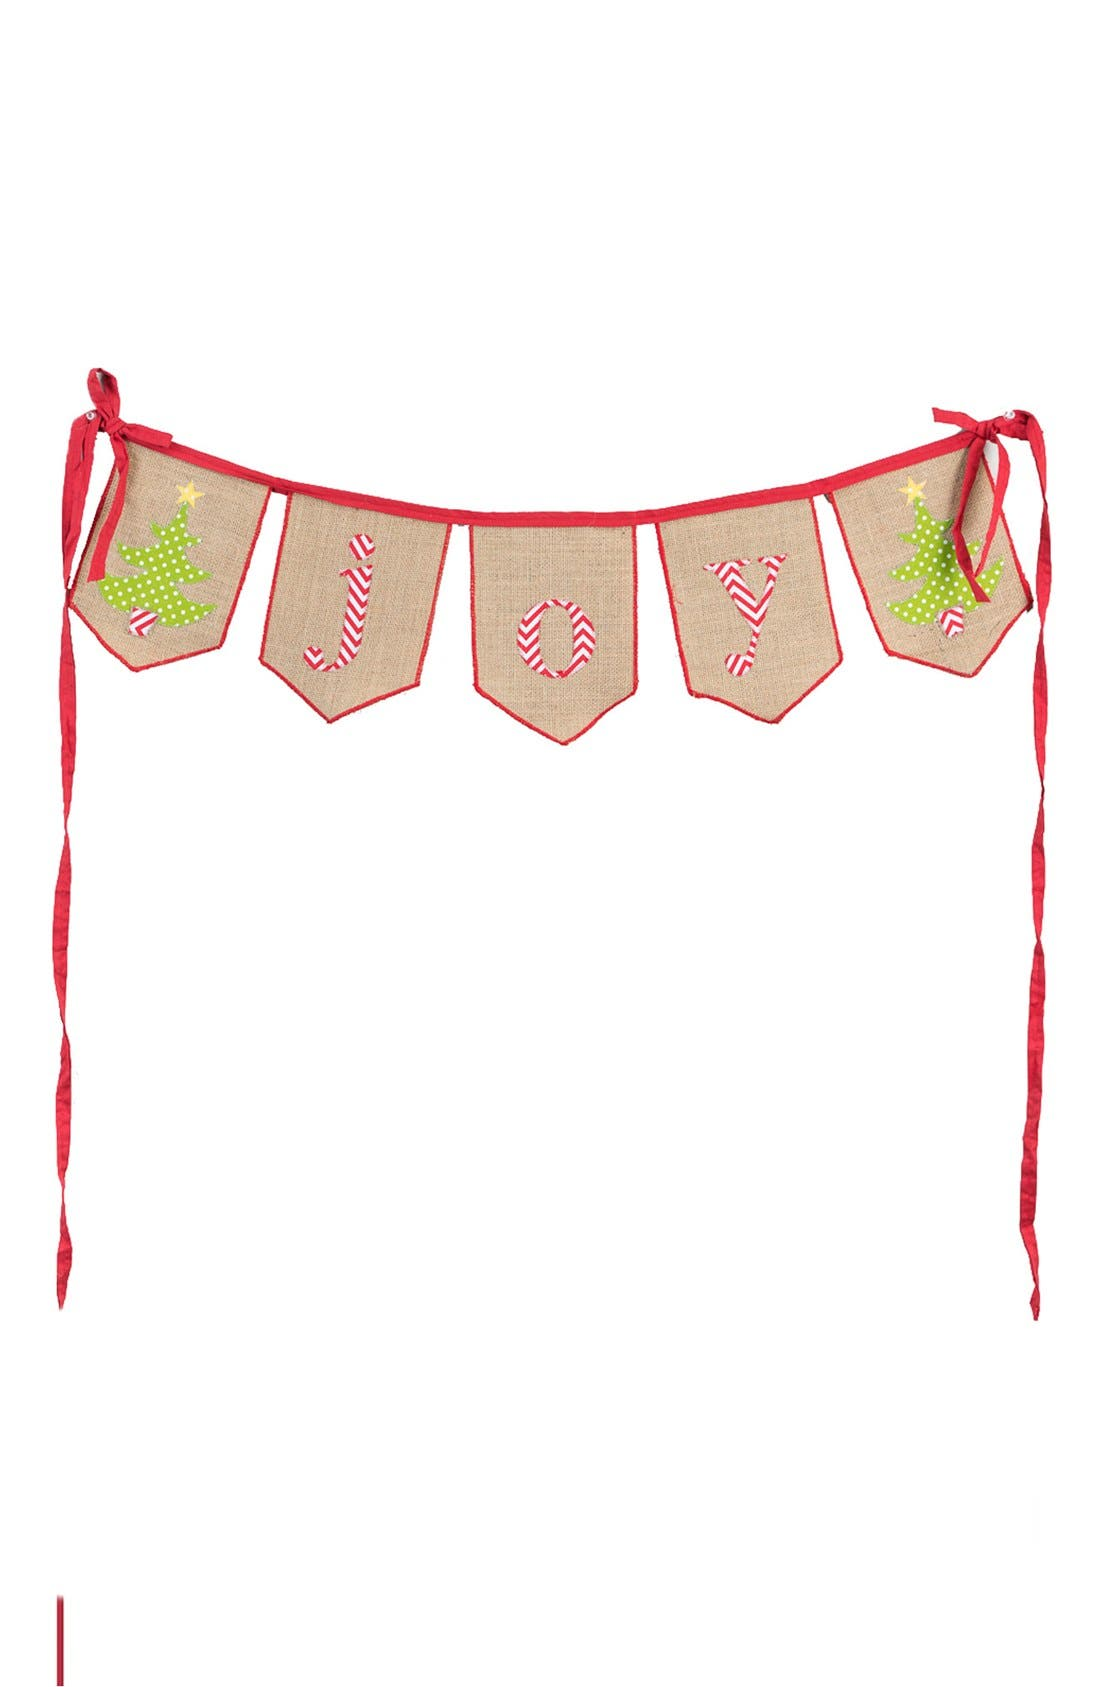 'Joy' Burlap Banner,                         Main,                         color,